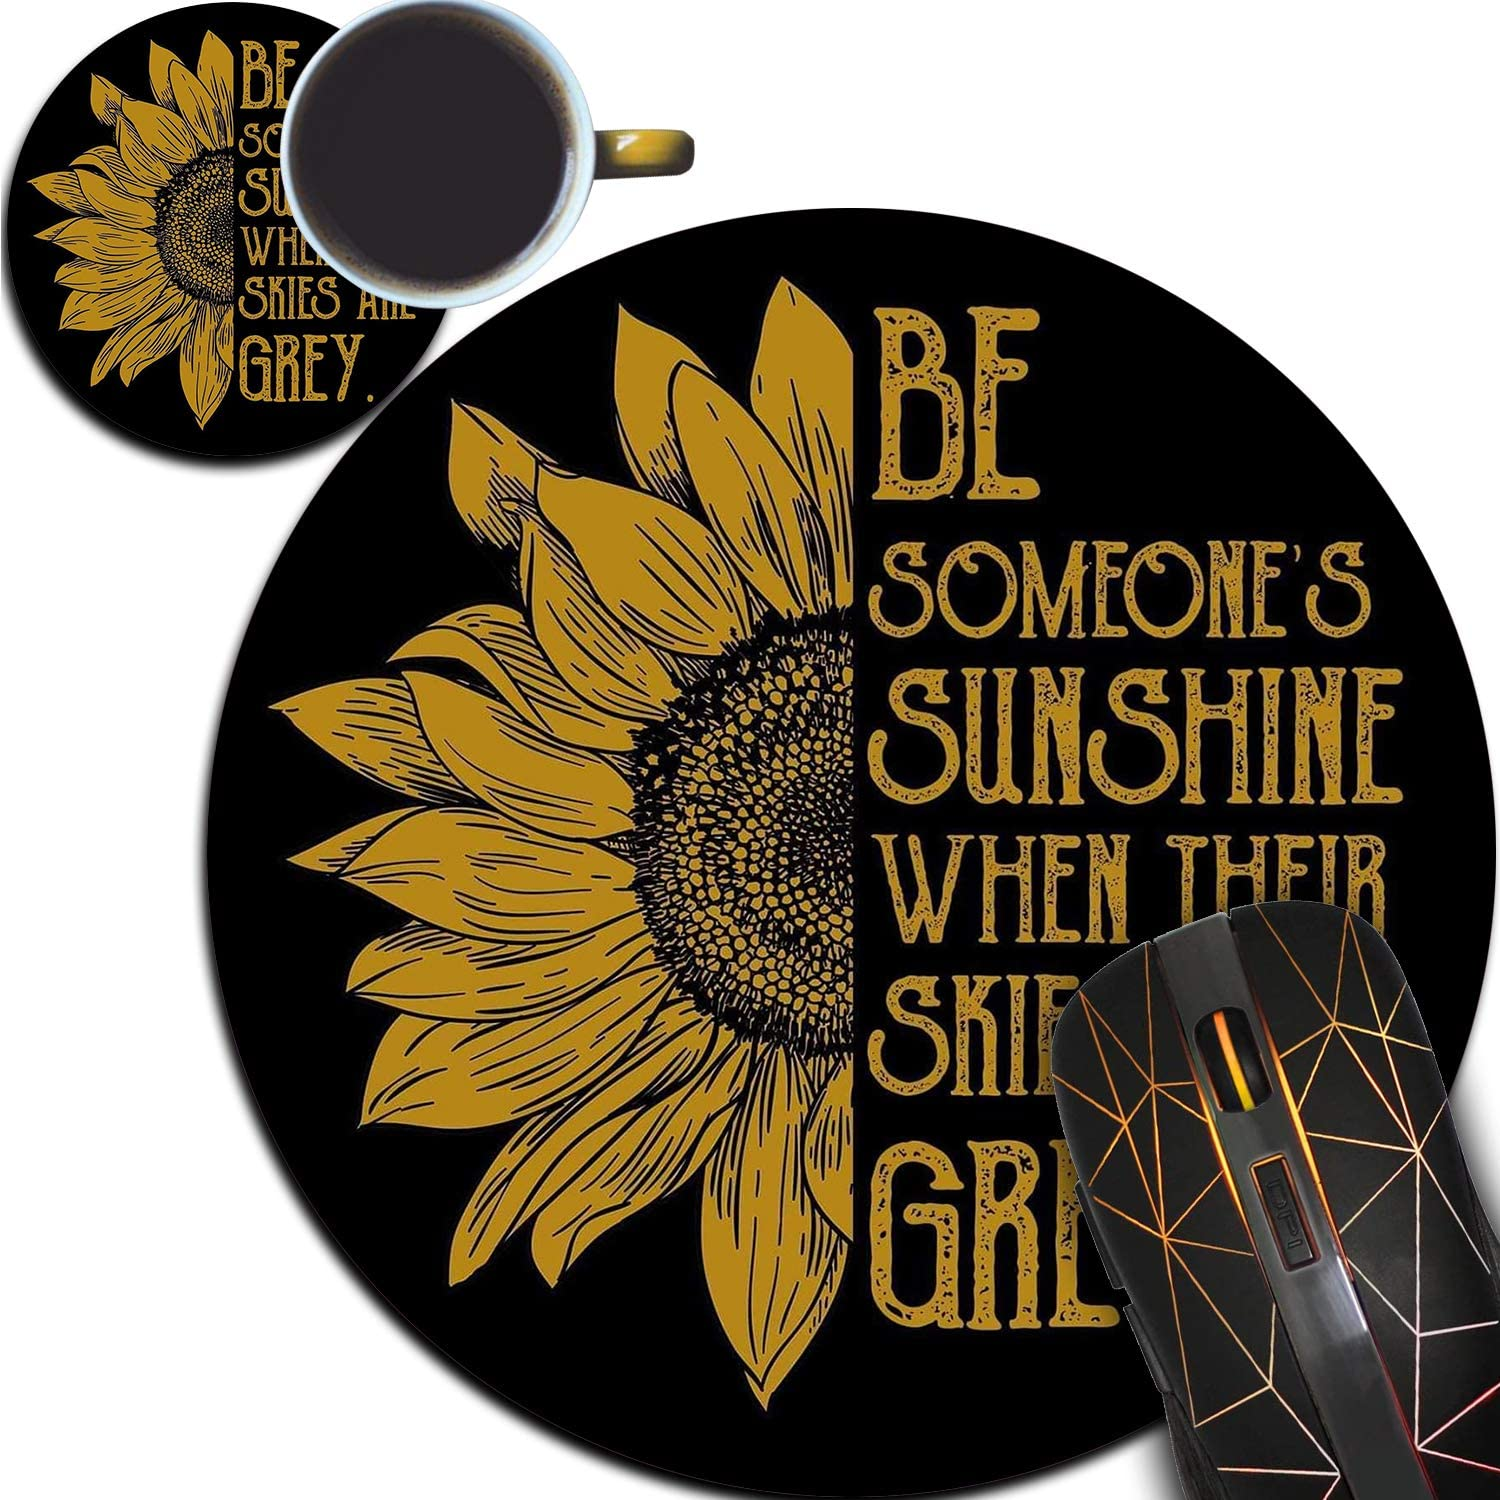 Personalized Round Mouse Pad and Coaster Set, Sunflower Stripes Design Round Non-Slip Rubber Mouse Pads Office Desk Accessories for Computers Laptop